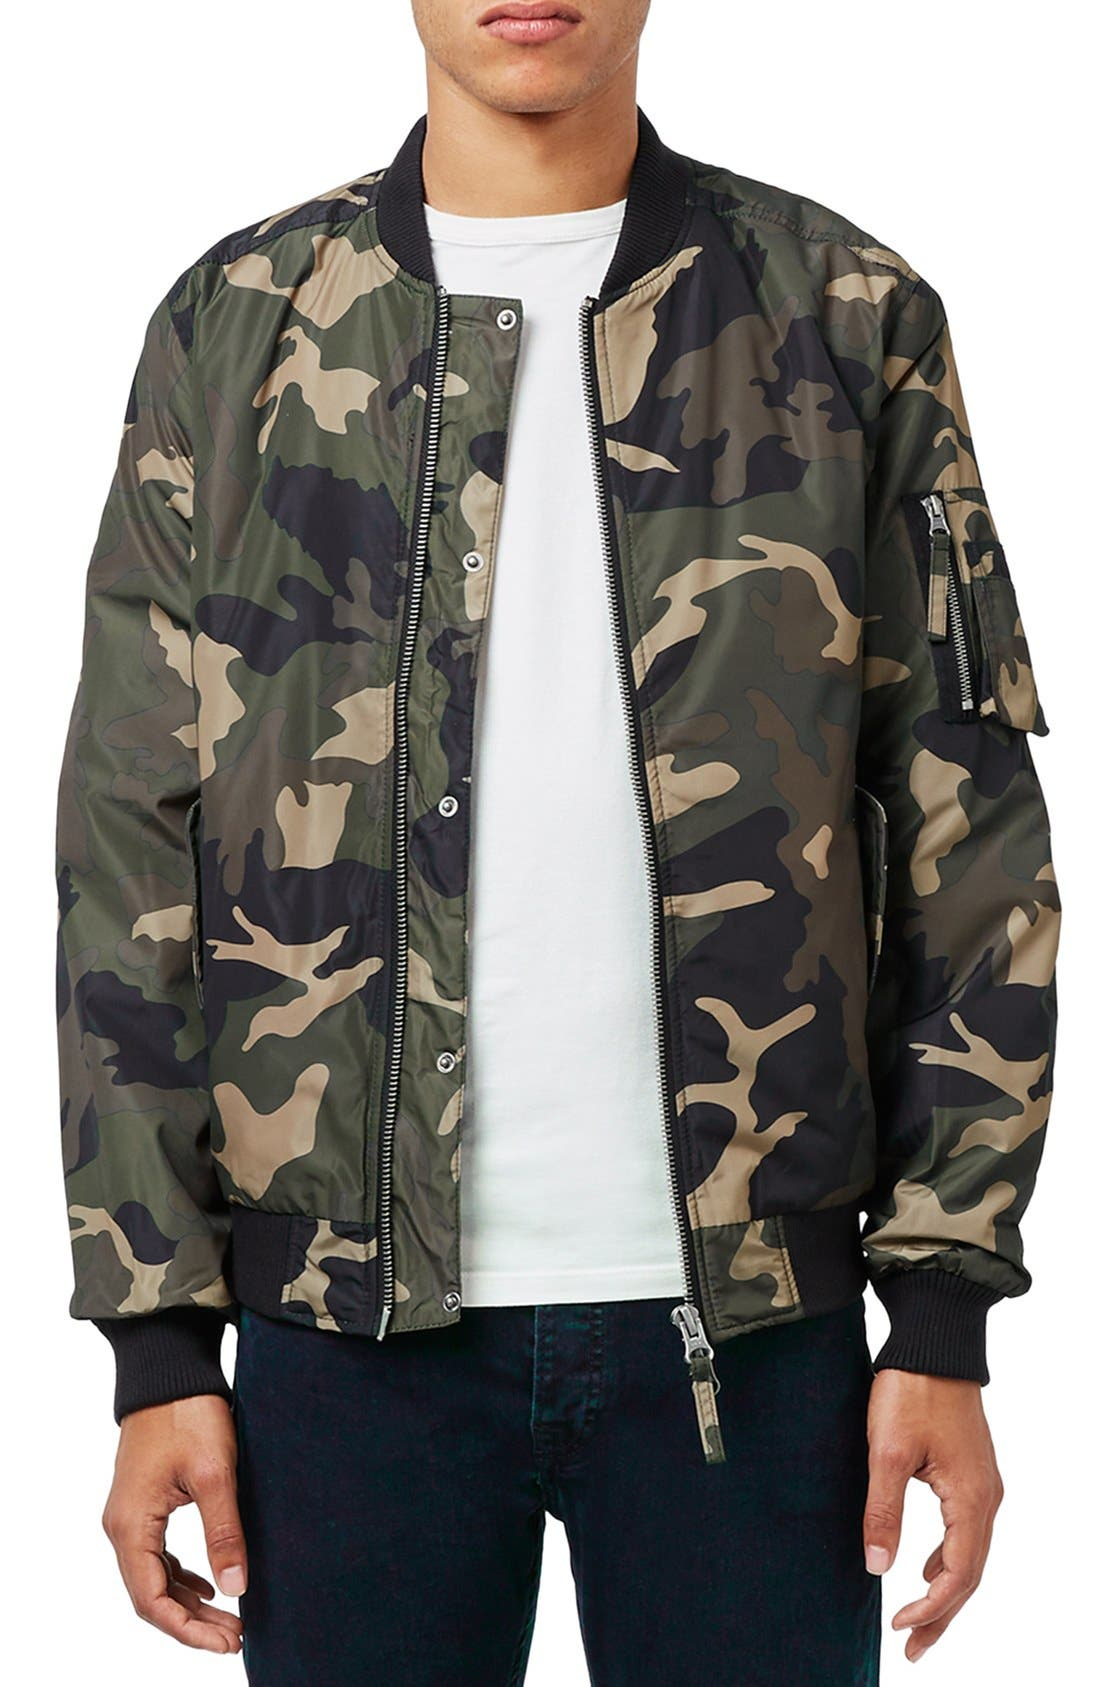 Camo Print MA-1 Bomber Jacket,                             Main thumbnail 1, color,                             300